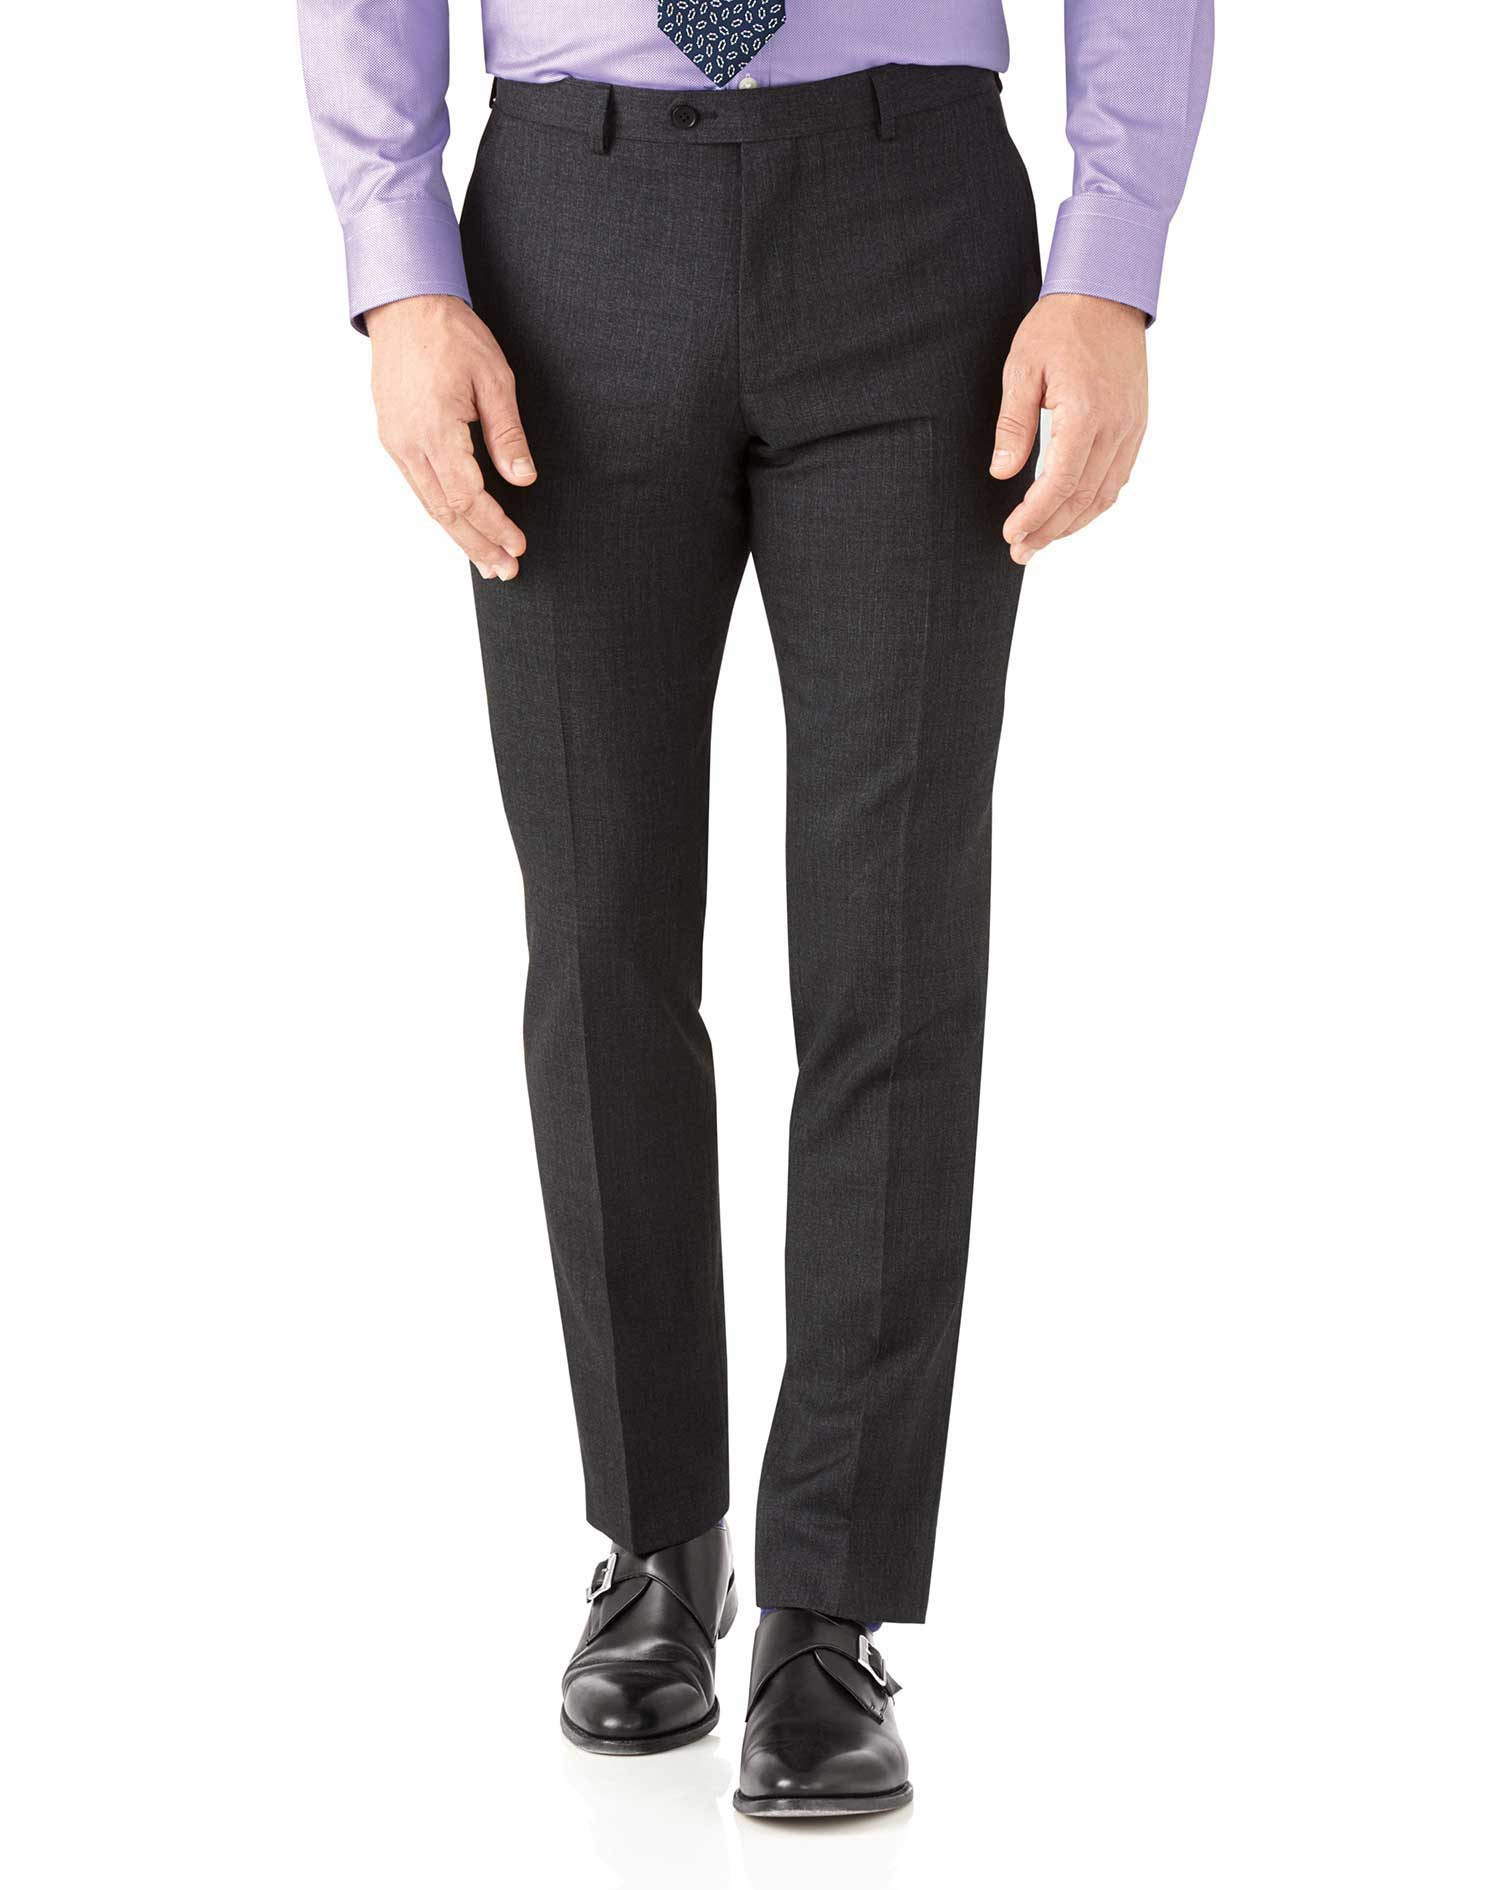 Charcoal Slim Fit Hairline Business Suit Trousers Size W36 L34 by Charles Tyrwhitt